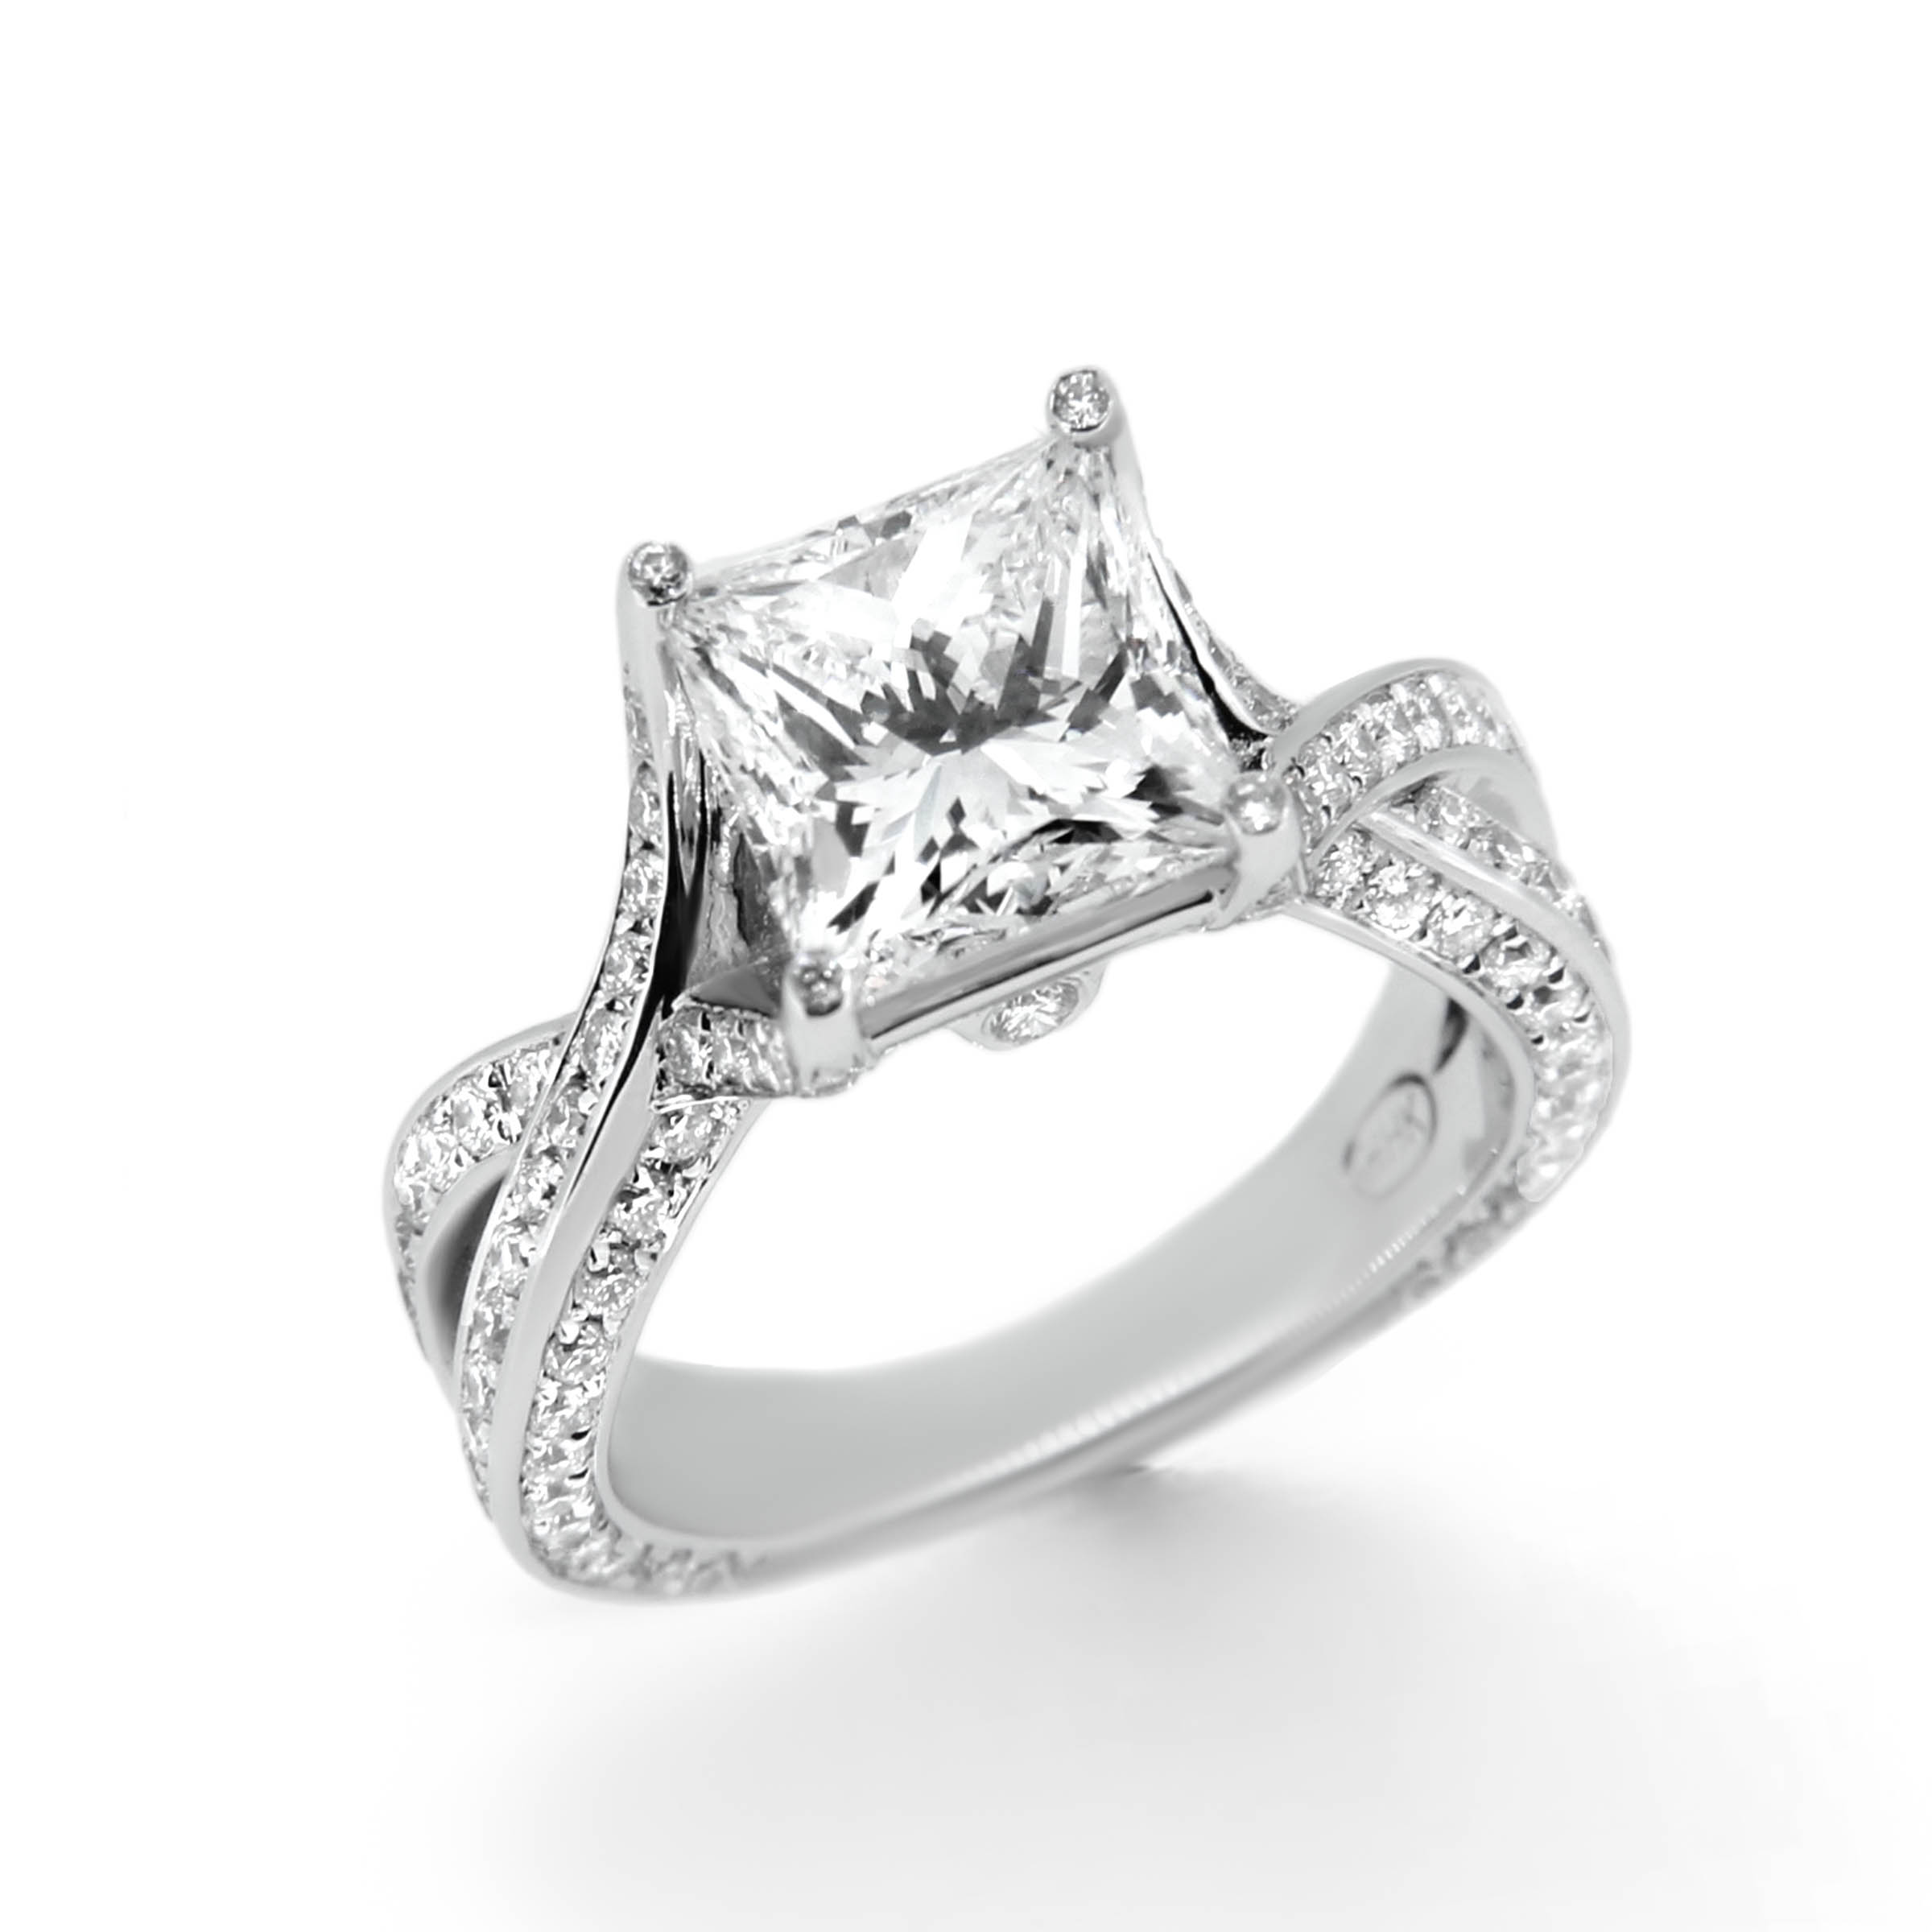 princess cut diamond engagement ring- haywards of hong kong